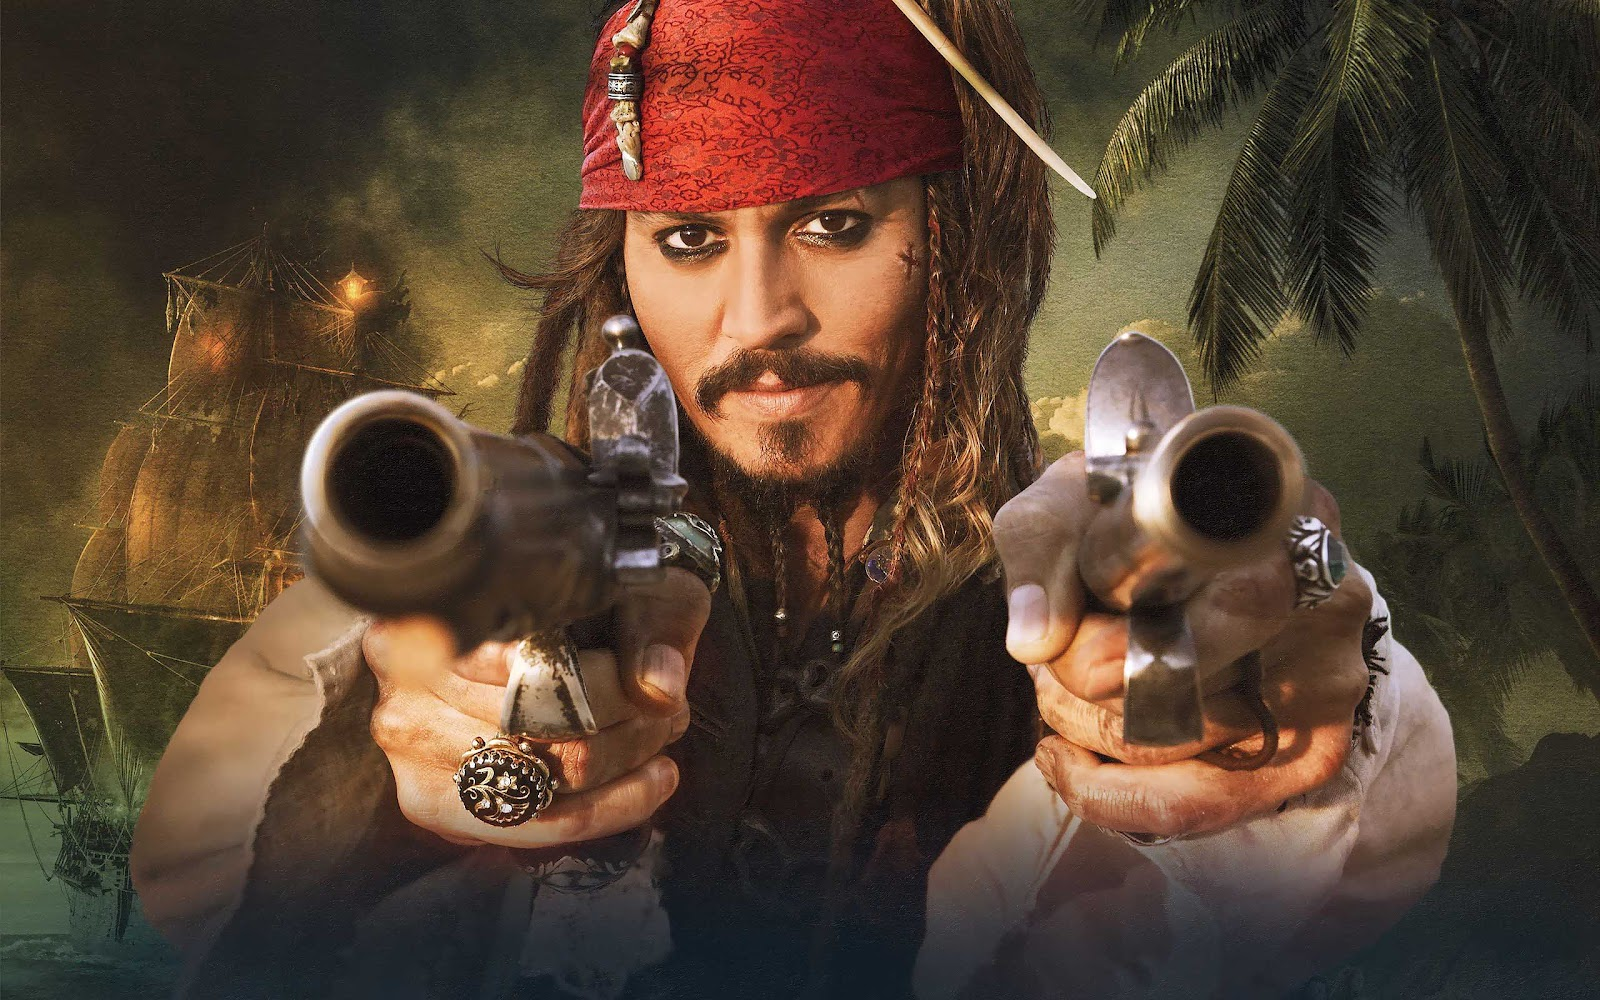 Pirates Of The Caribean Wallpaper: 99walls Johnny Depp In Pirates Of The Caribbean Wallpapers